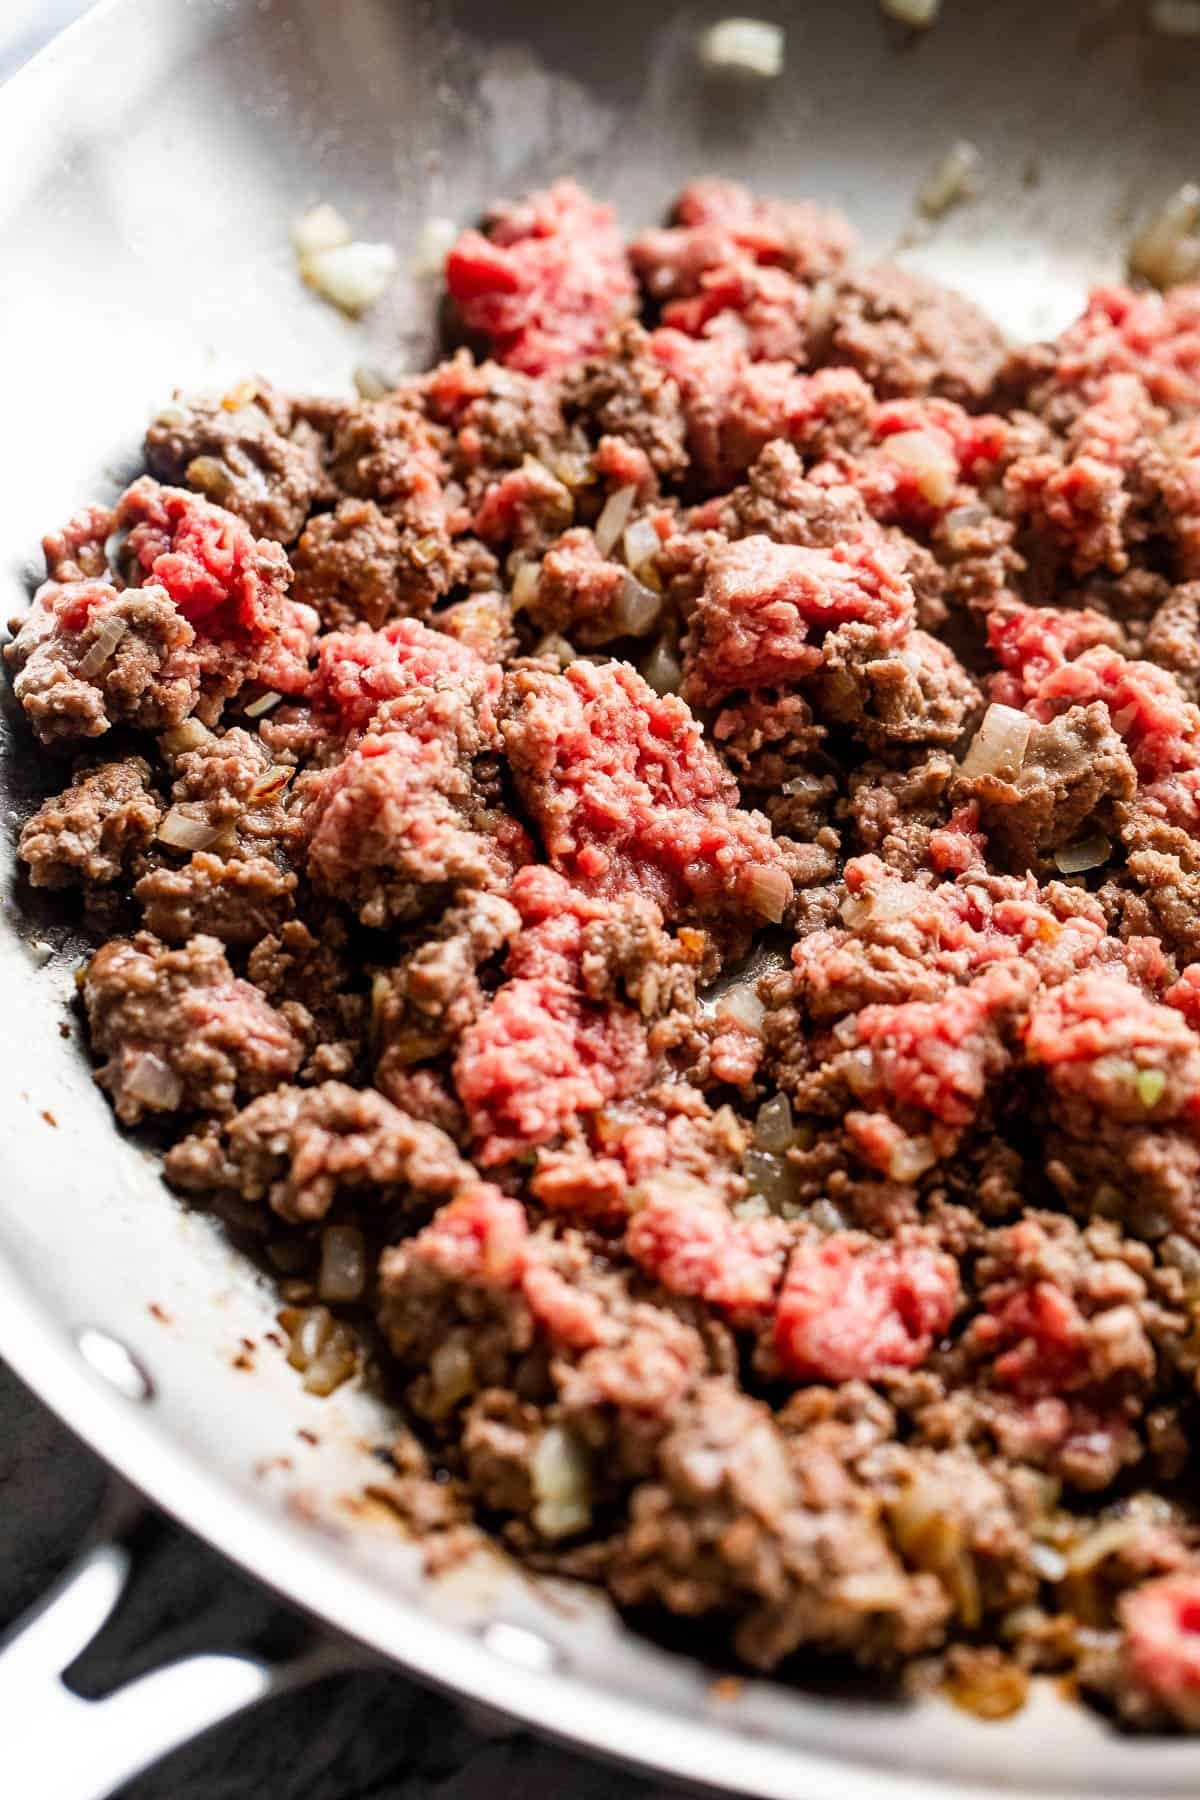 cooking ground meat in a skillet